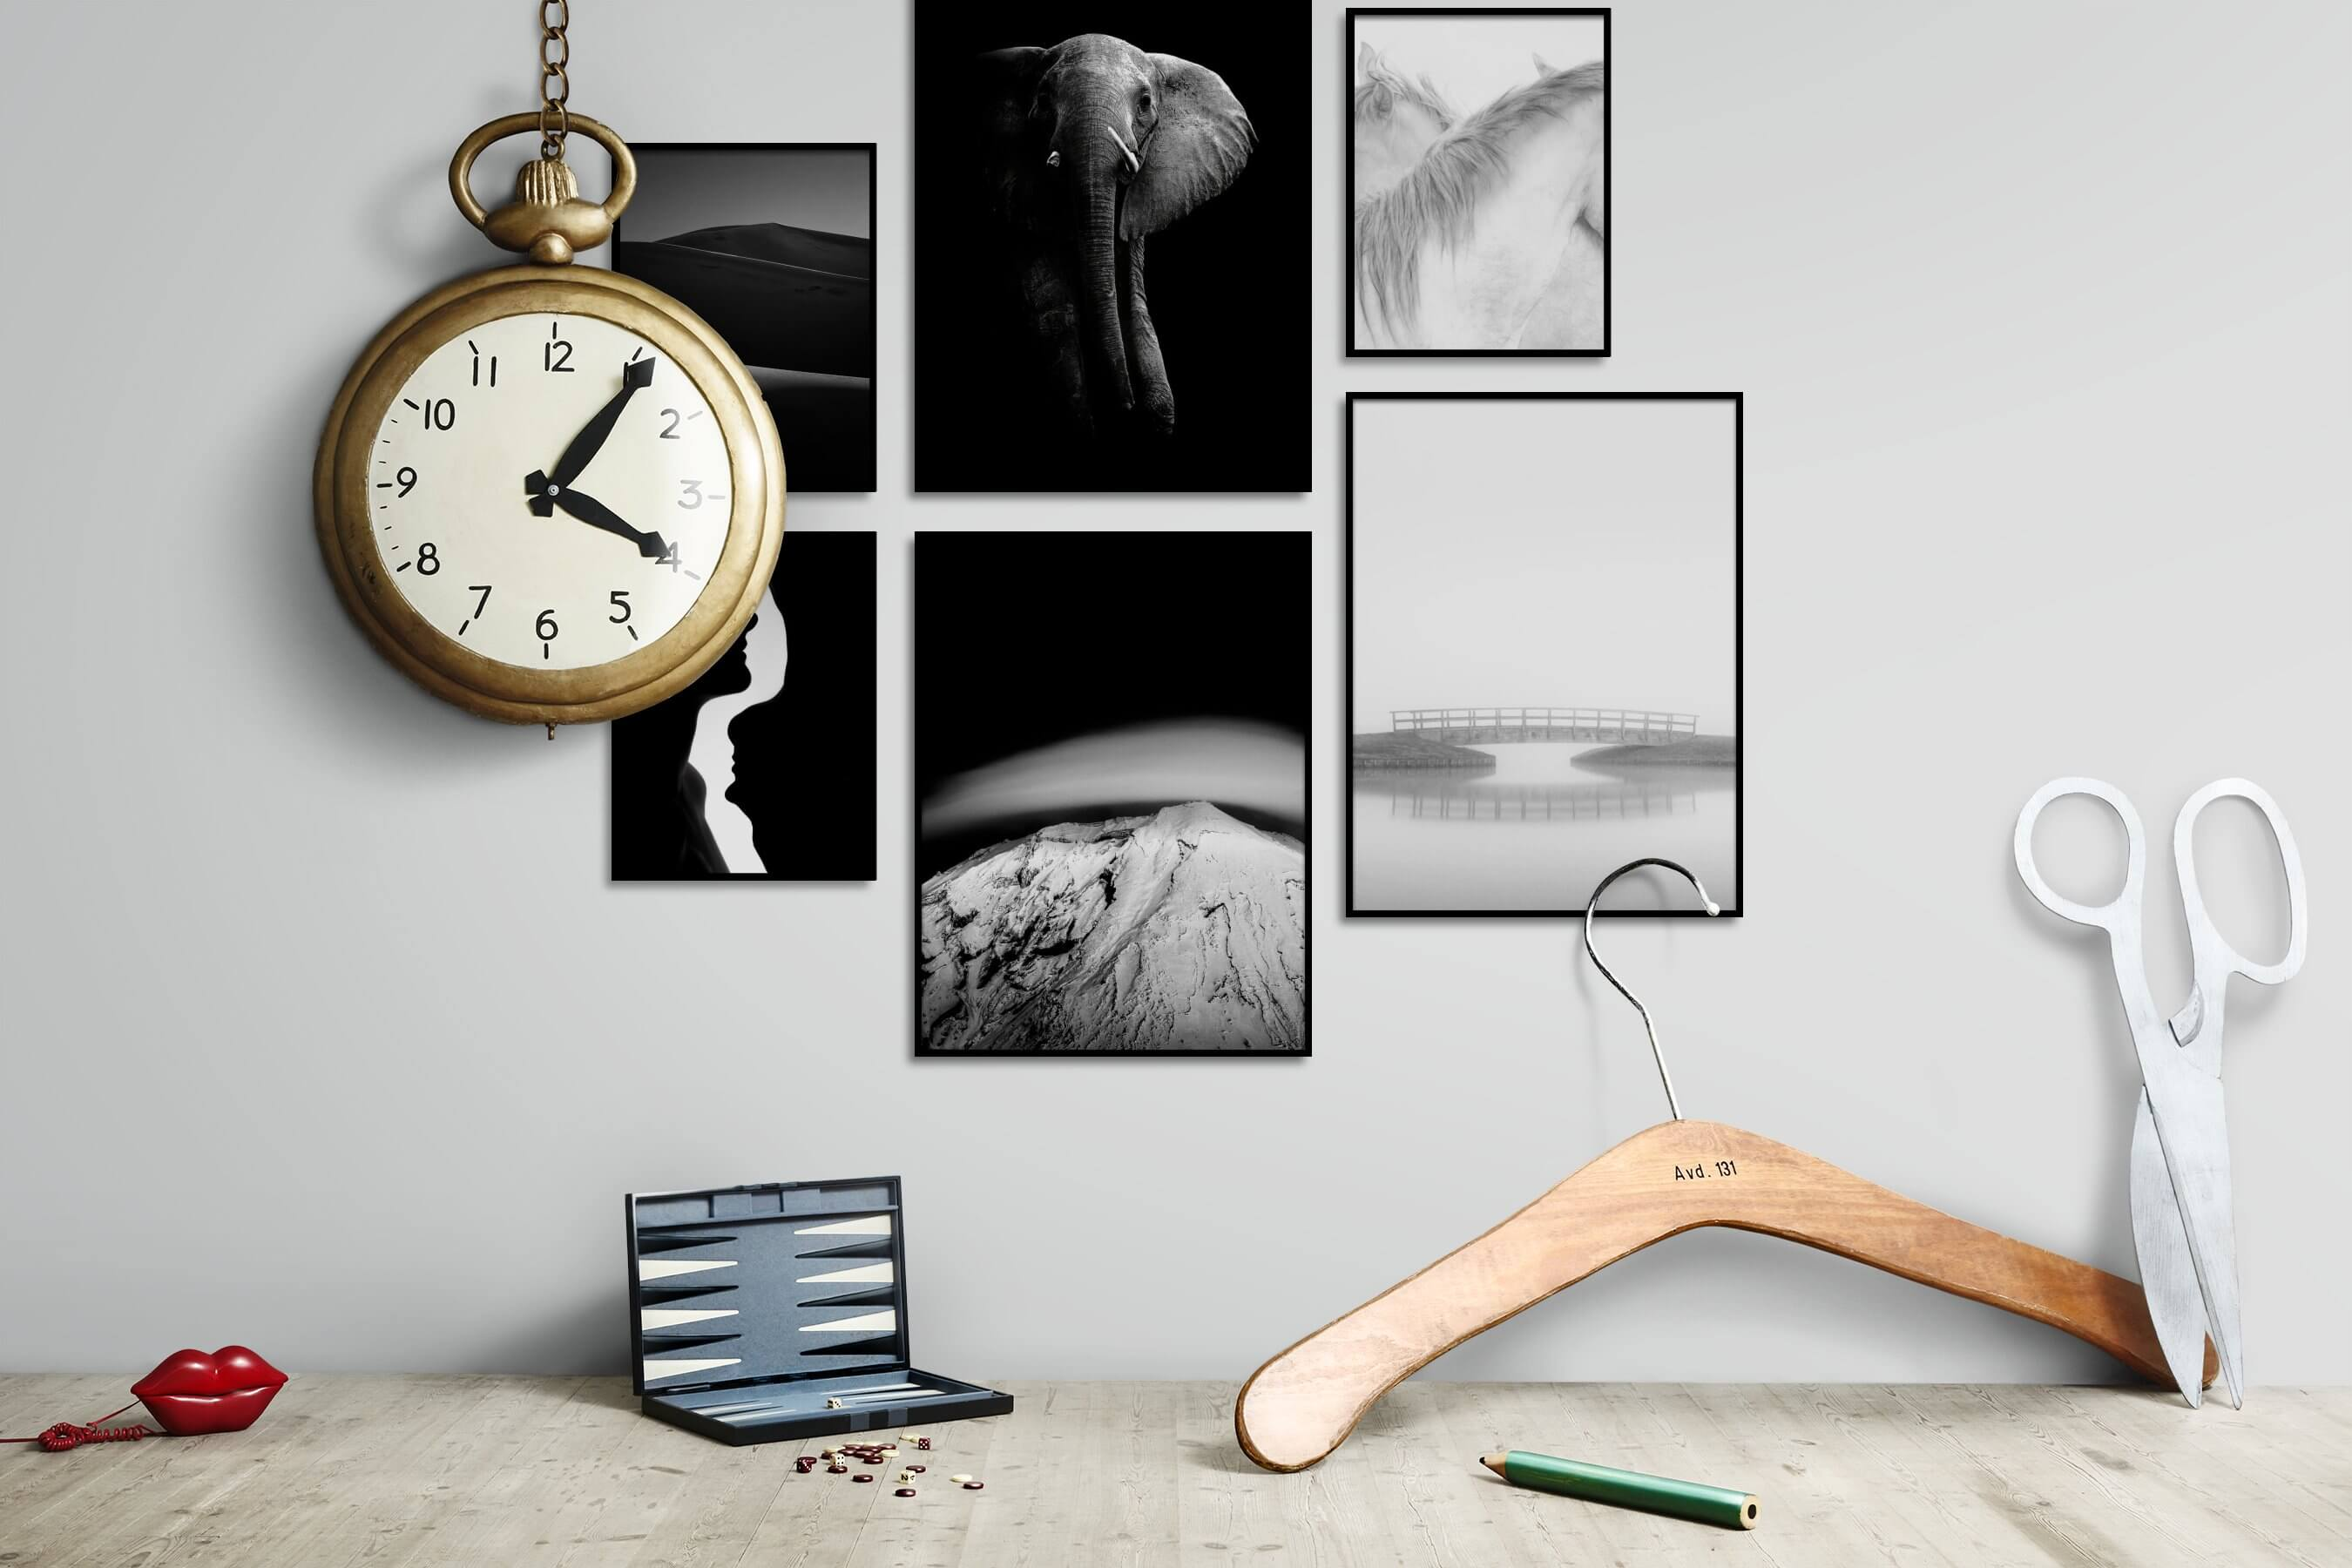 Gallery wall idea with six framed pictures arranged on a wall depicting Black & White, Dark Tones, For the Moderate, Nature, For the Minimalist, Animals, Mindfulness, Bright Tones, and Country Life